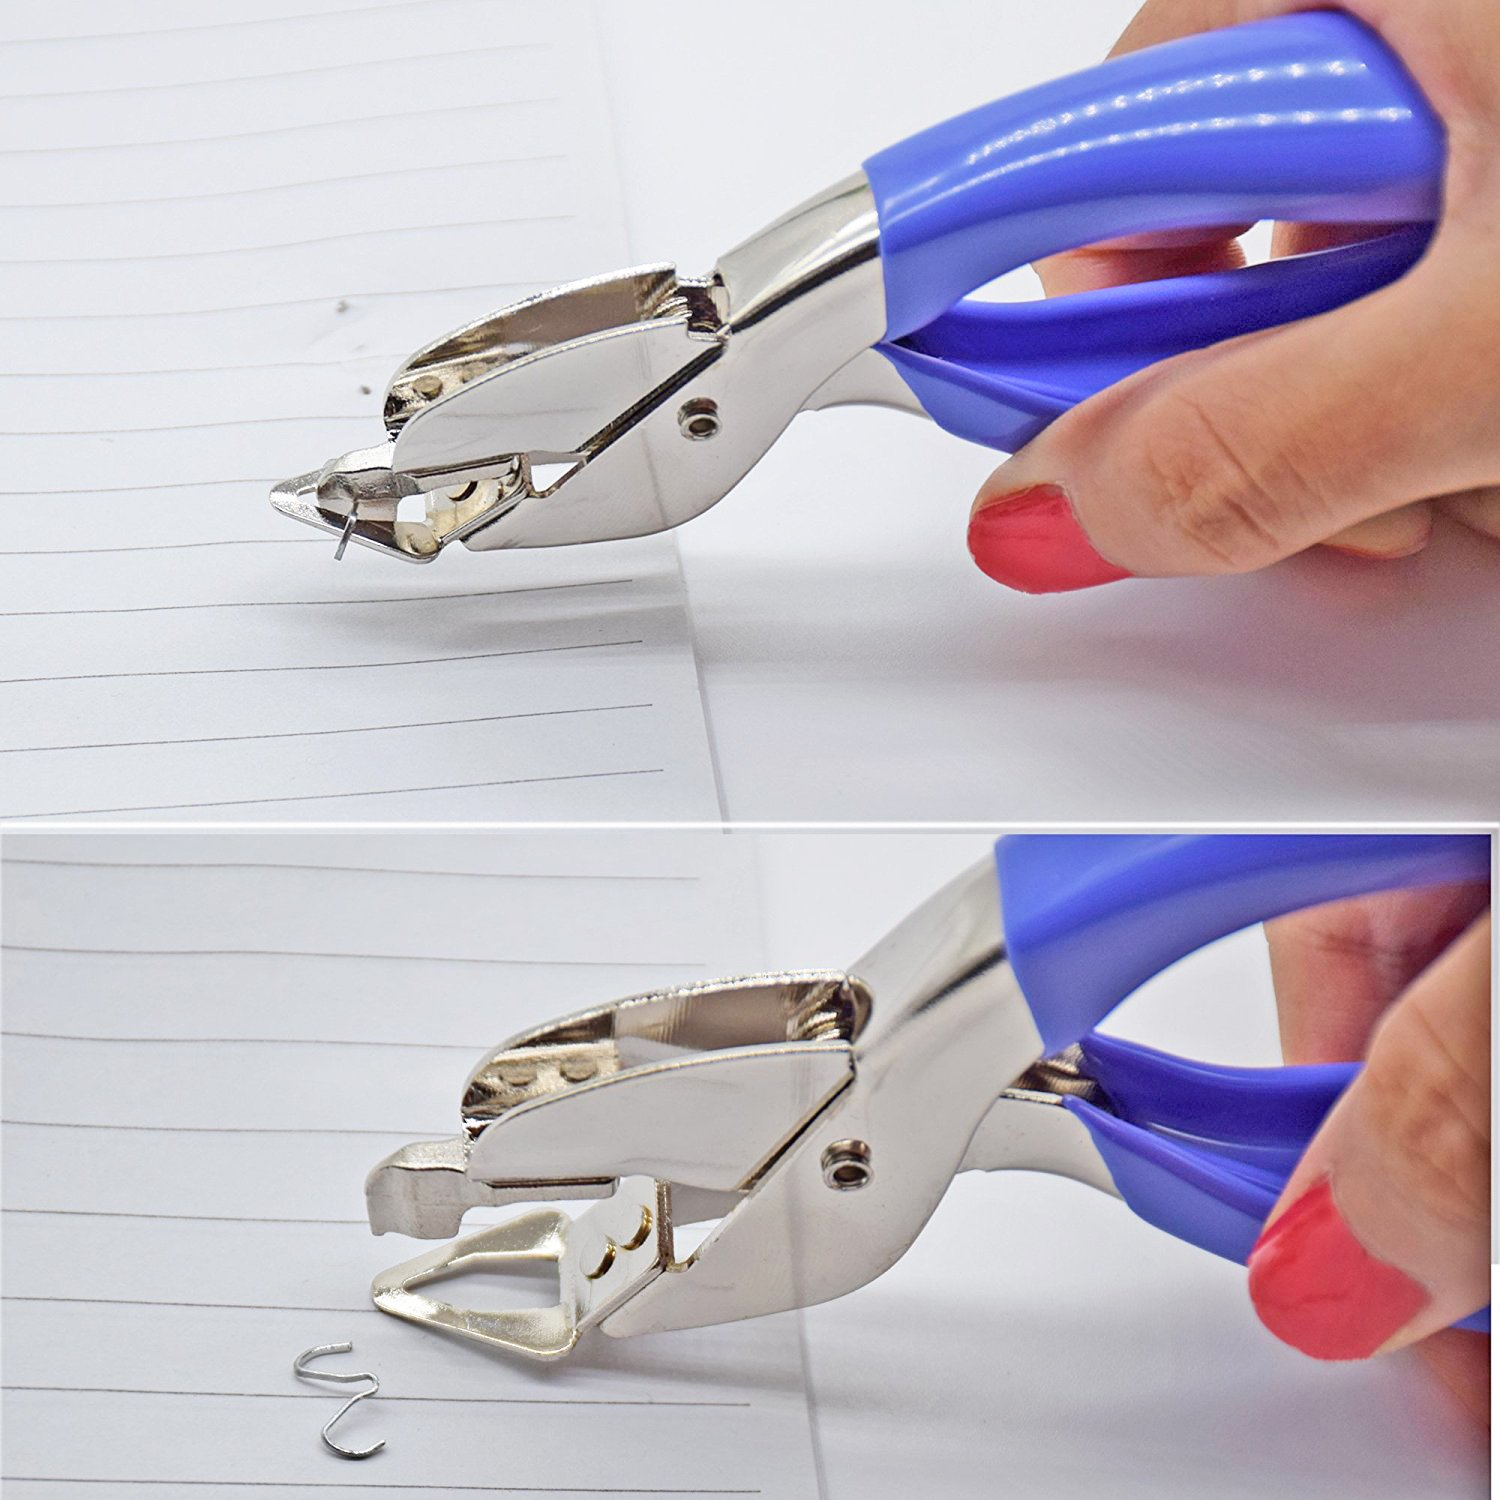 YUEKUI Staple Remover Heavy Duty Staple Removers Tool for Office,Easy to Use (2 pcs Blue) by YUEKUI (Image #5)